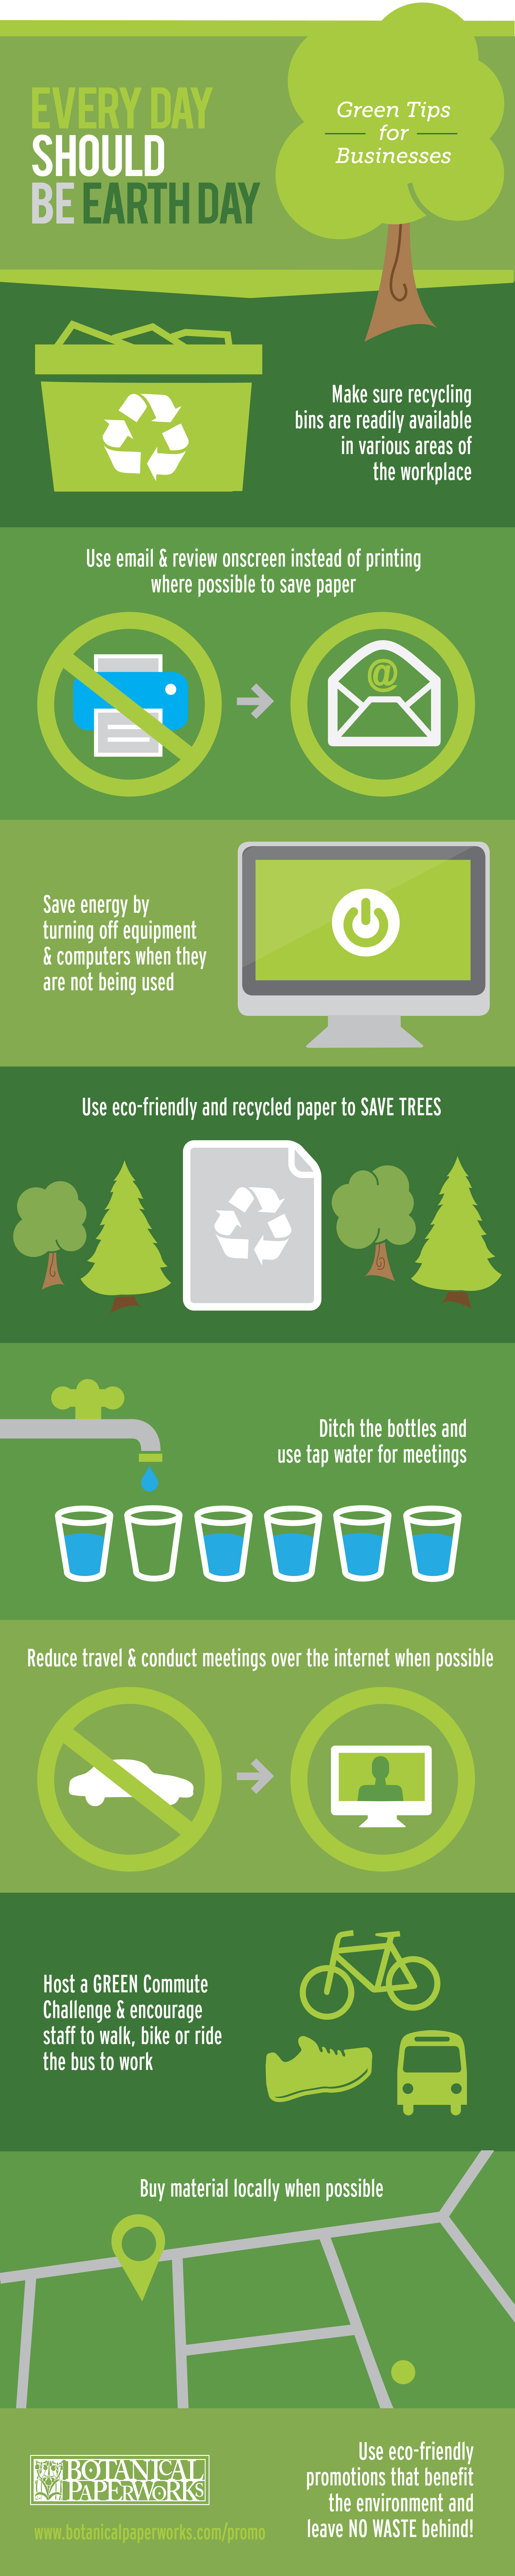 Incorporate  eco-friendly practices every day of the year with these Green Business Tips.